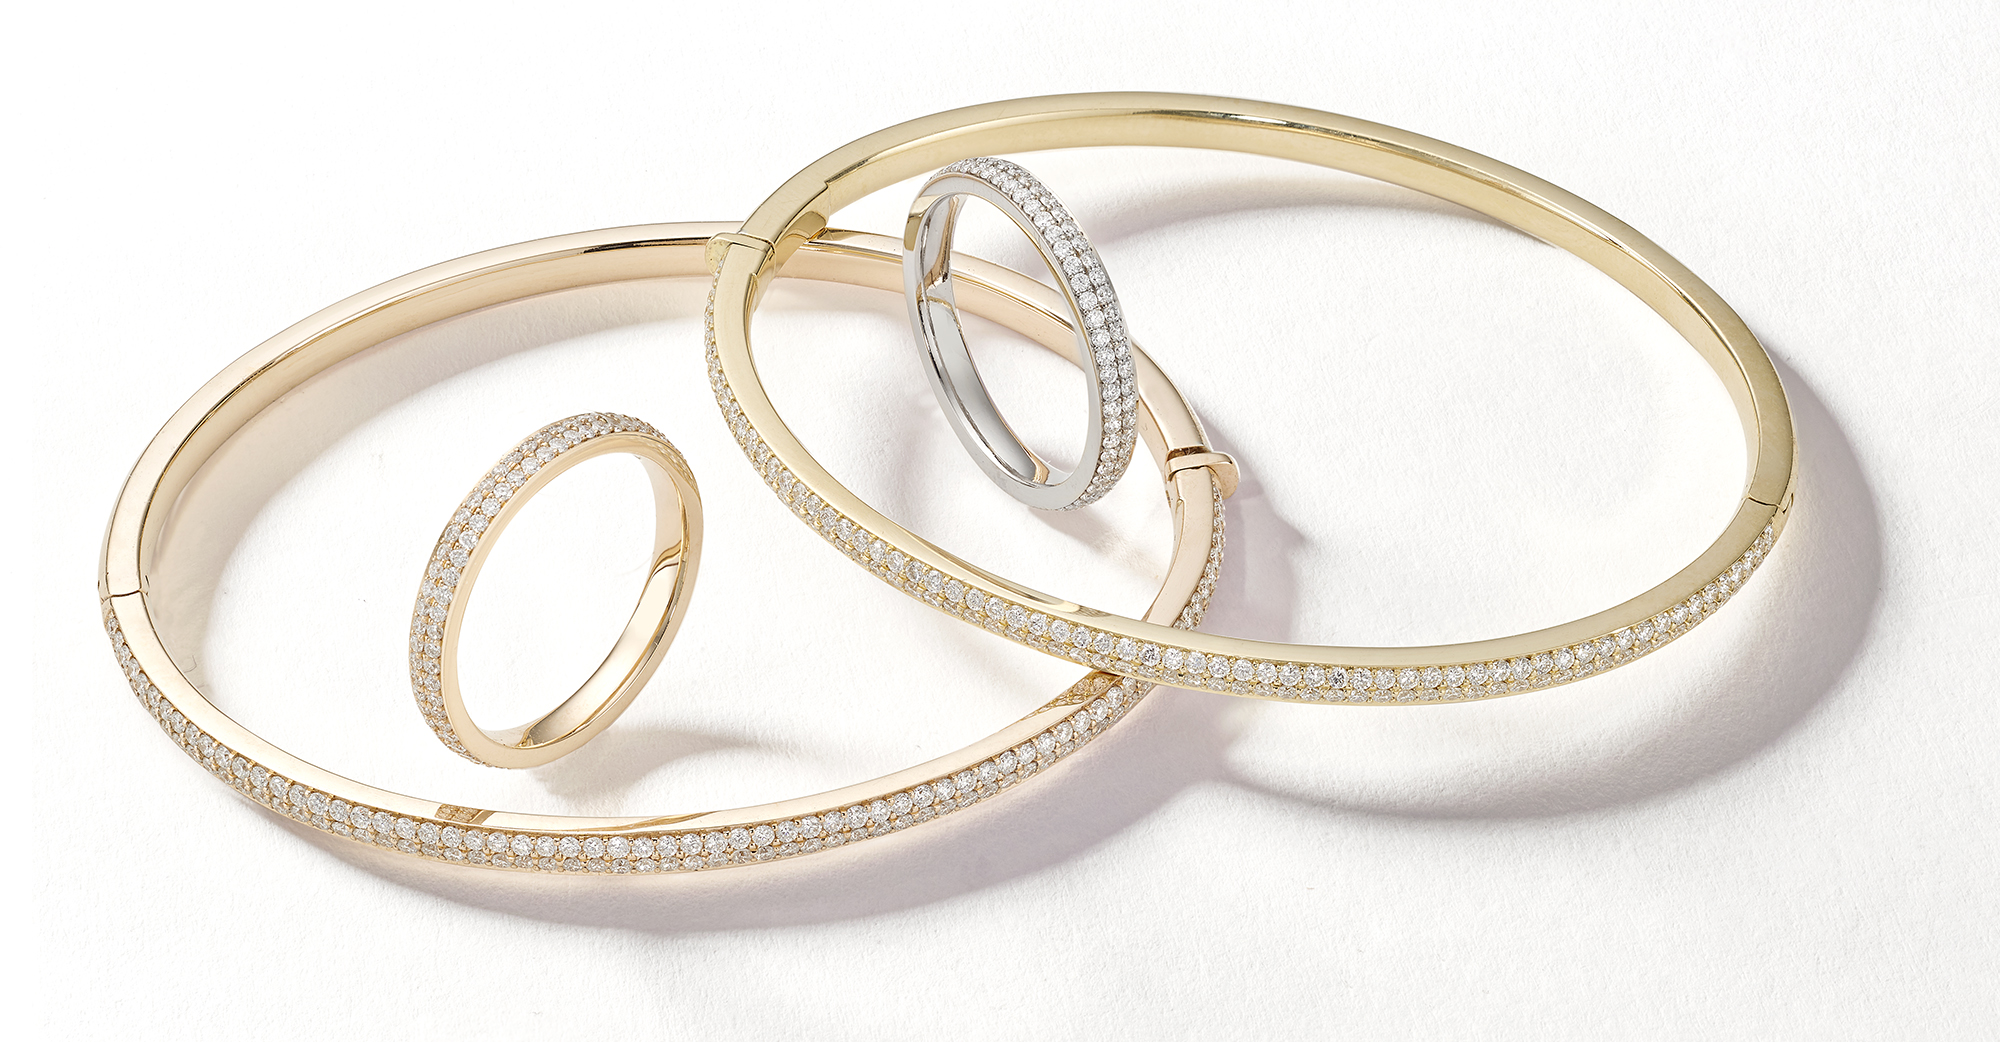 Jewellery photography London, diamond bangles and gold and silver rings create this creative packshot from still life jewellery photographer Howlett Photography